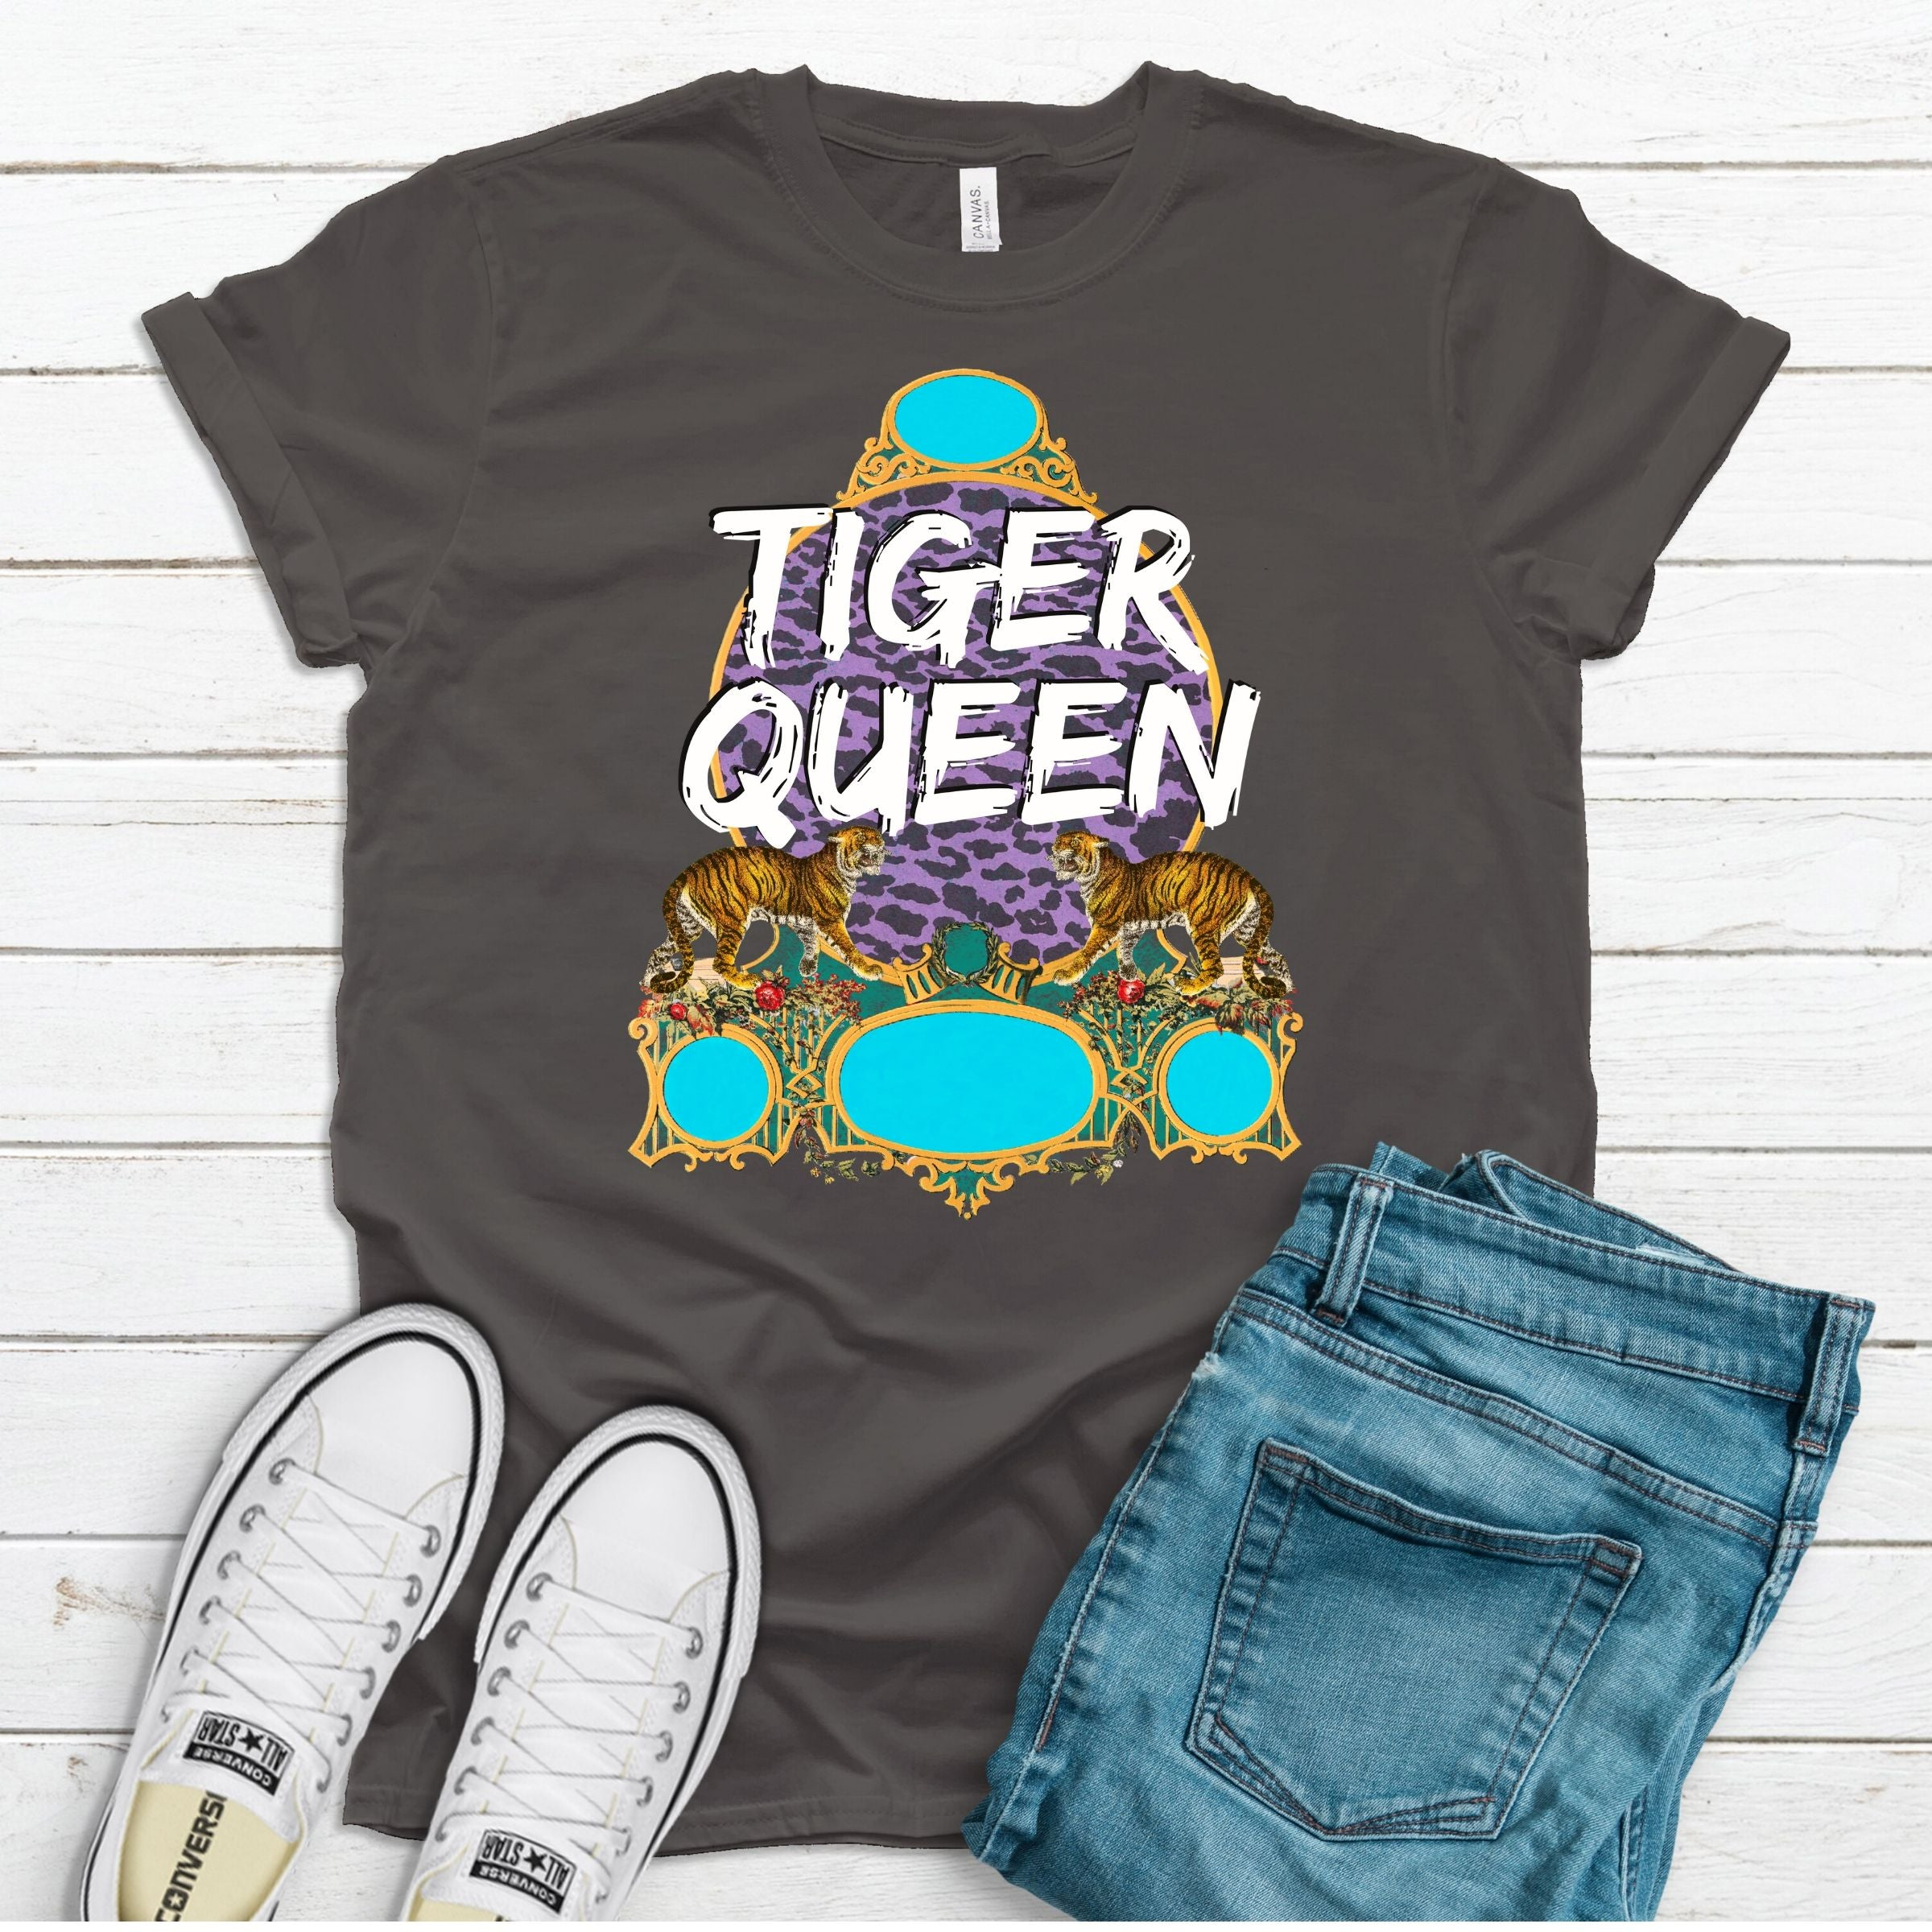 Wholesale :: Tiger Queen - Asphalt-Shop-Wholesale-Womens-Boutique-Custom-Graphic-Tees-Branding-Gifts